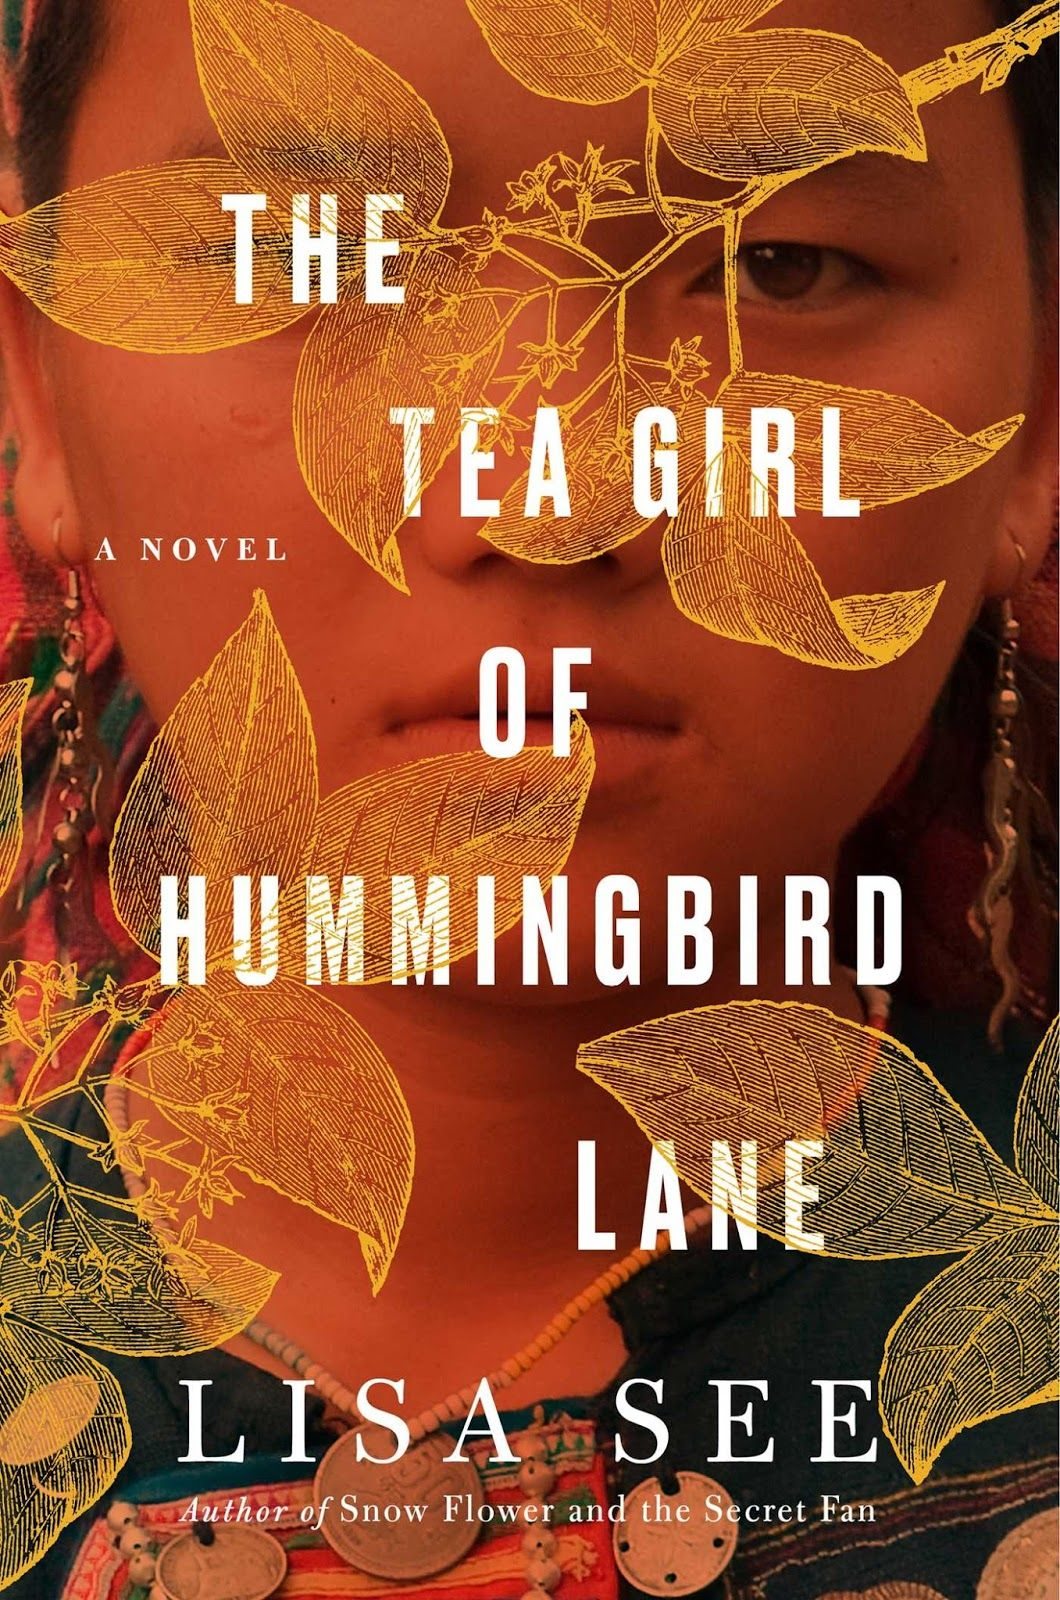 Download pdf the tea girl of hummingbird lane by lisa see i great deals on the tea girl of hummingbird lane by lisa see limited time free and discounted ebook deals for the tea girl of hummingbird lane and other fandeluxe Image collections